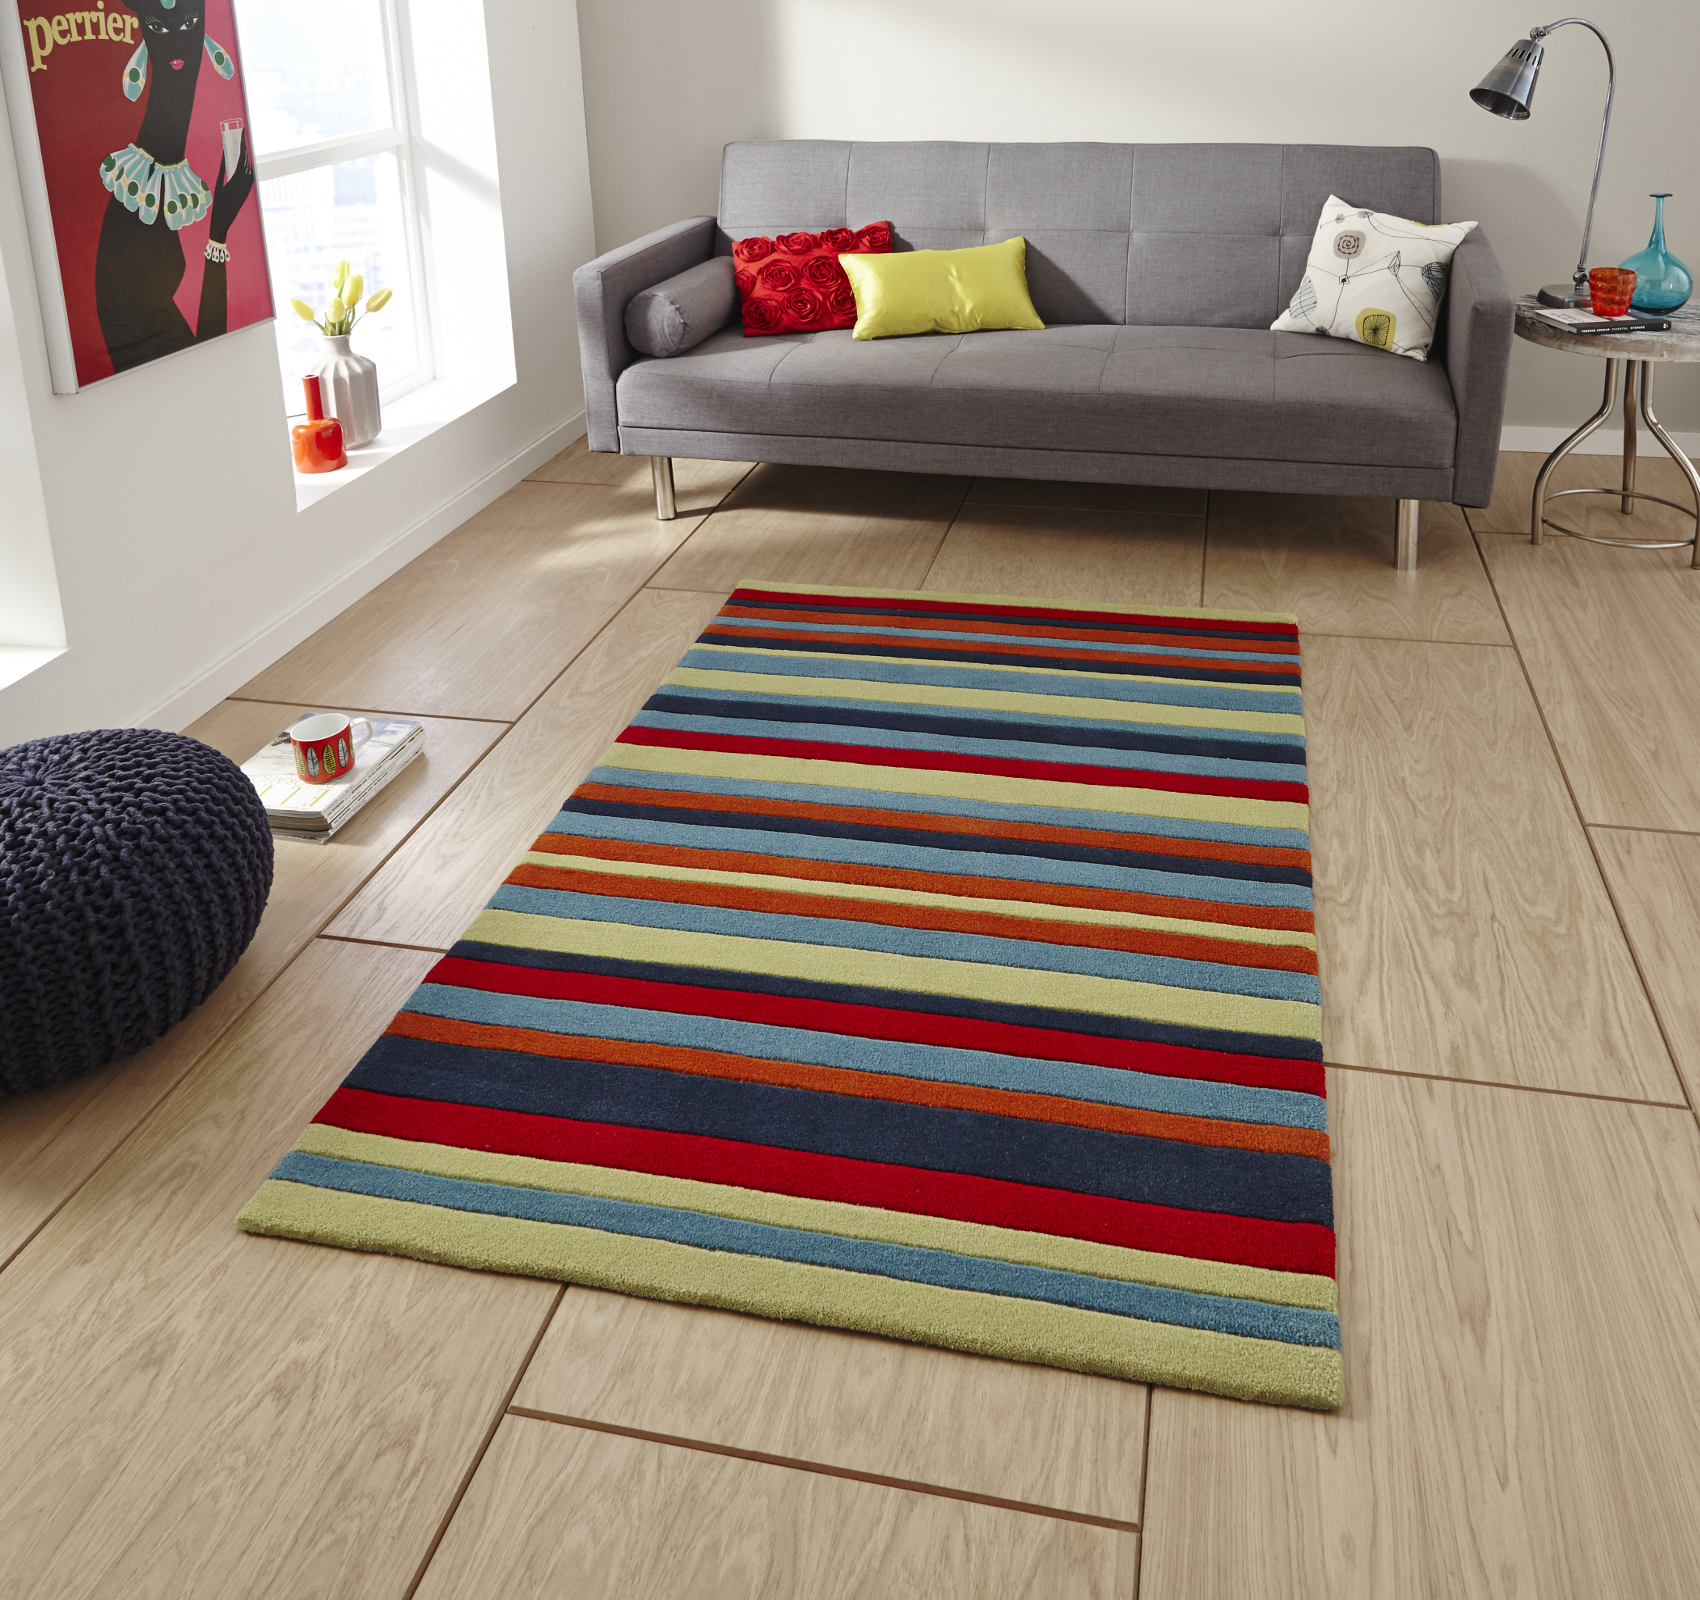 Hong Kong Hand Tufted Large Modern Rug Striped Design Acrylic Home ...